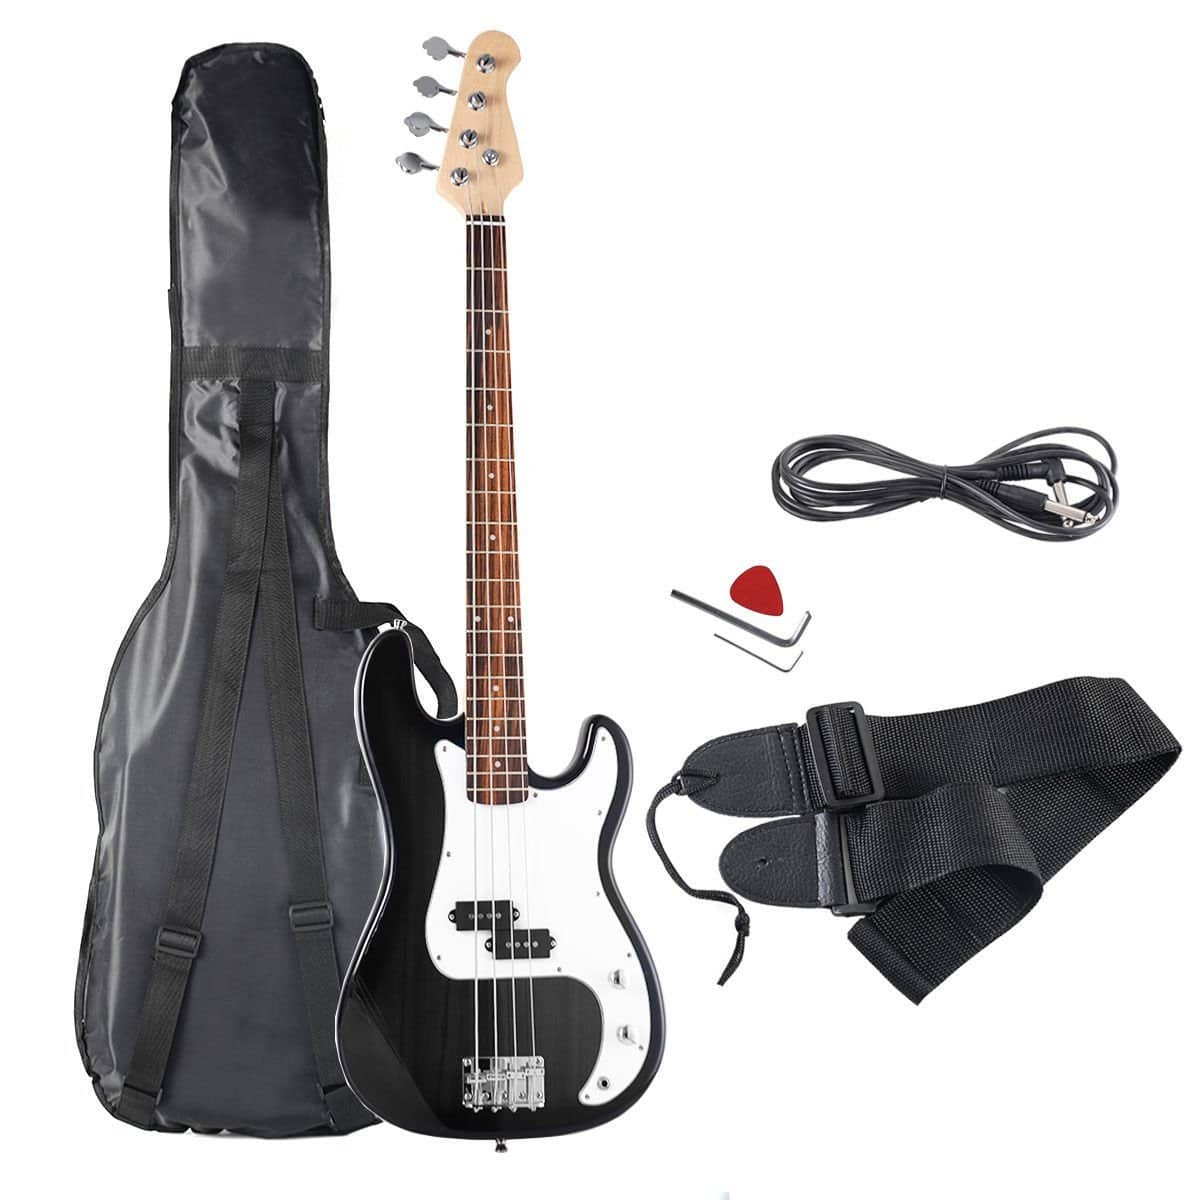 Goplus Electric Bass Guitar Full Size 4 String with Strap Guitar Bag Amp Cord (Black) $69